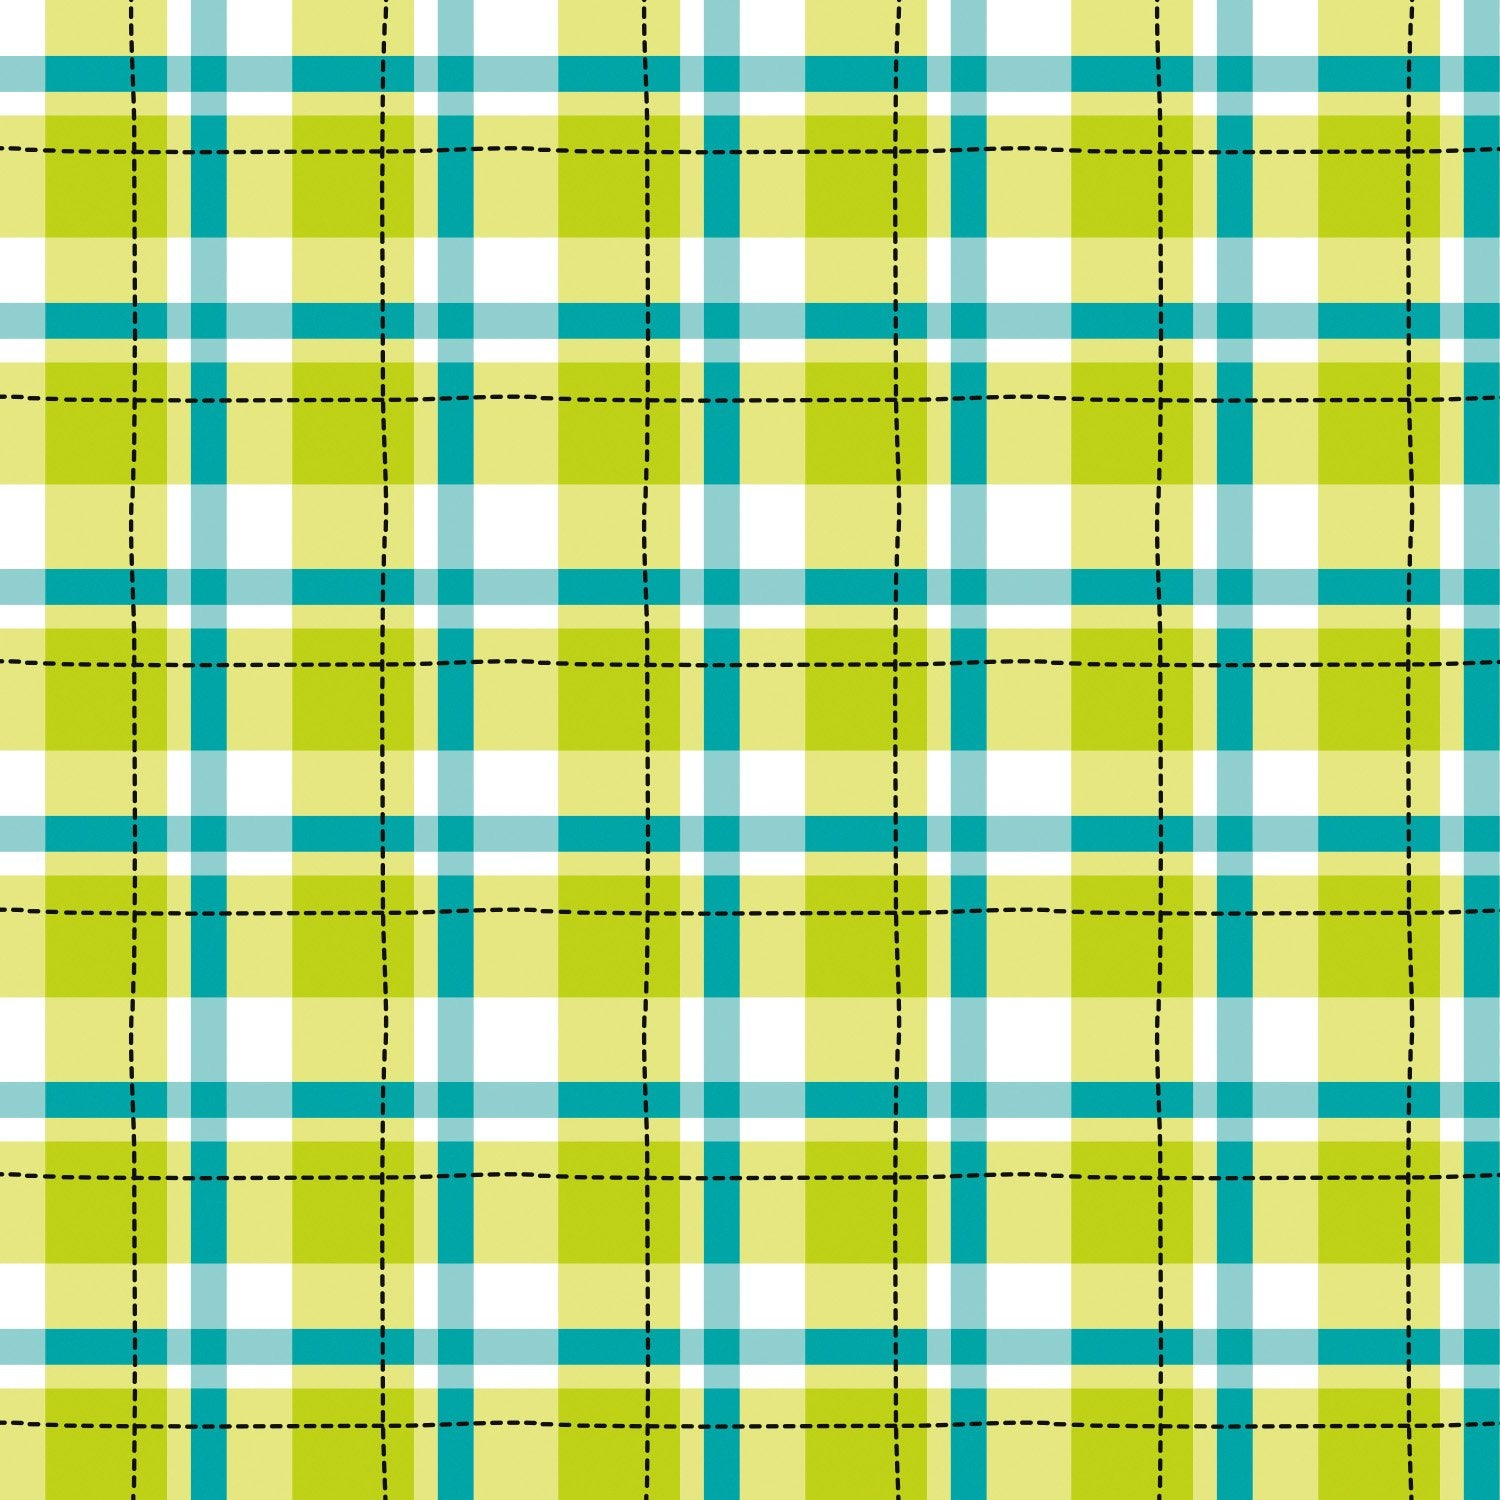 Game On by Elizabeth Silver - Plaid - Lime